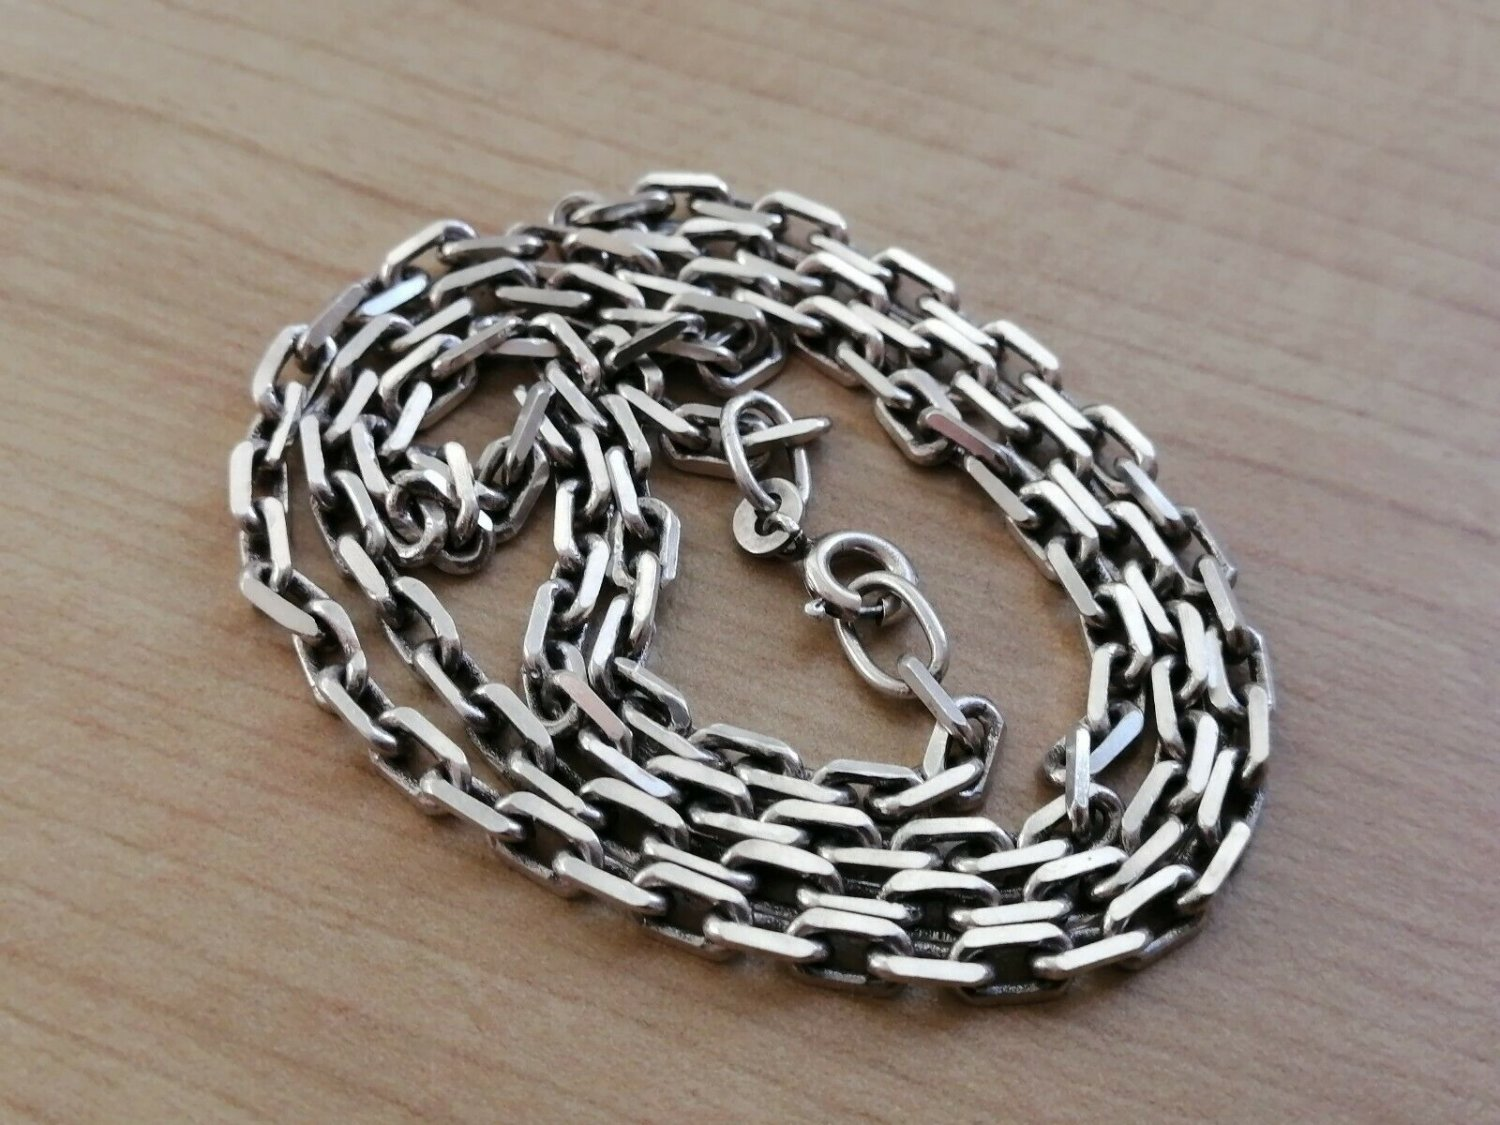 NECKLACE IN STERLING SILVER 925 IN IT'S GIFT BOX ORIGINAL